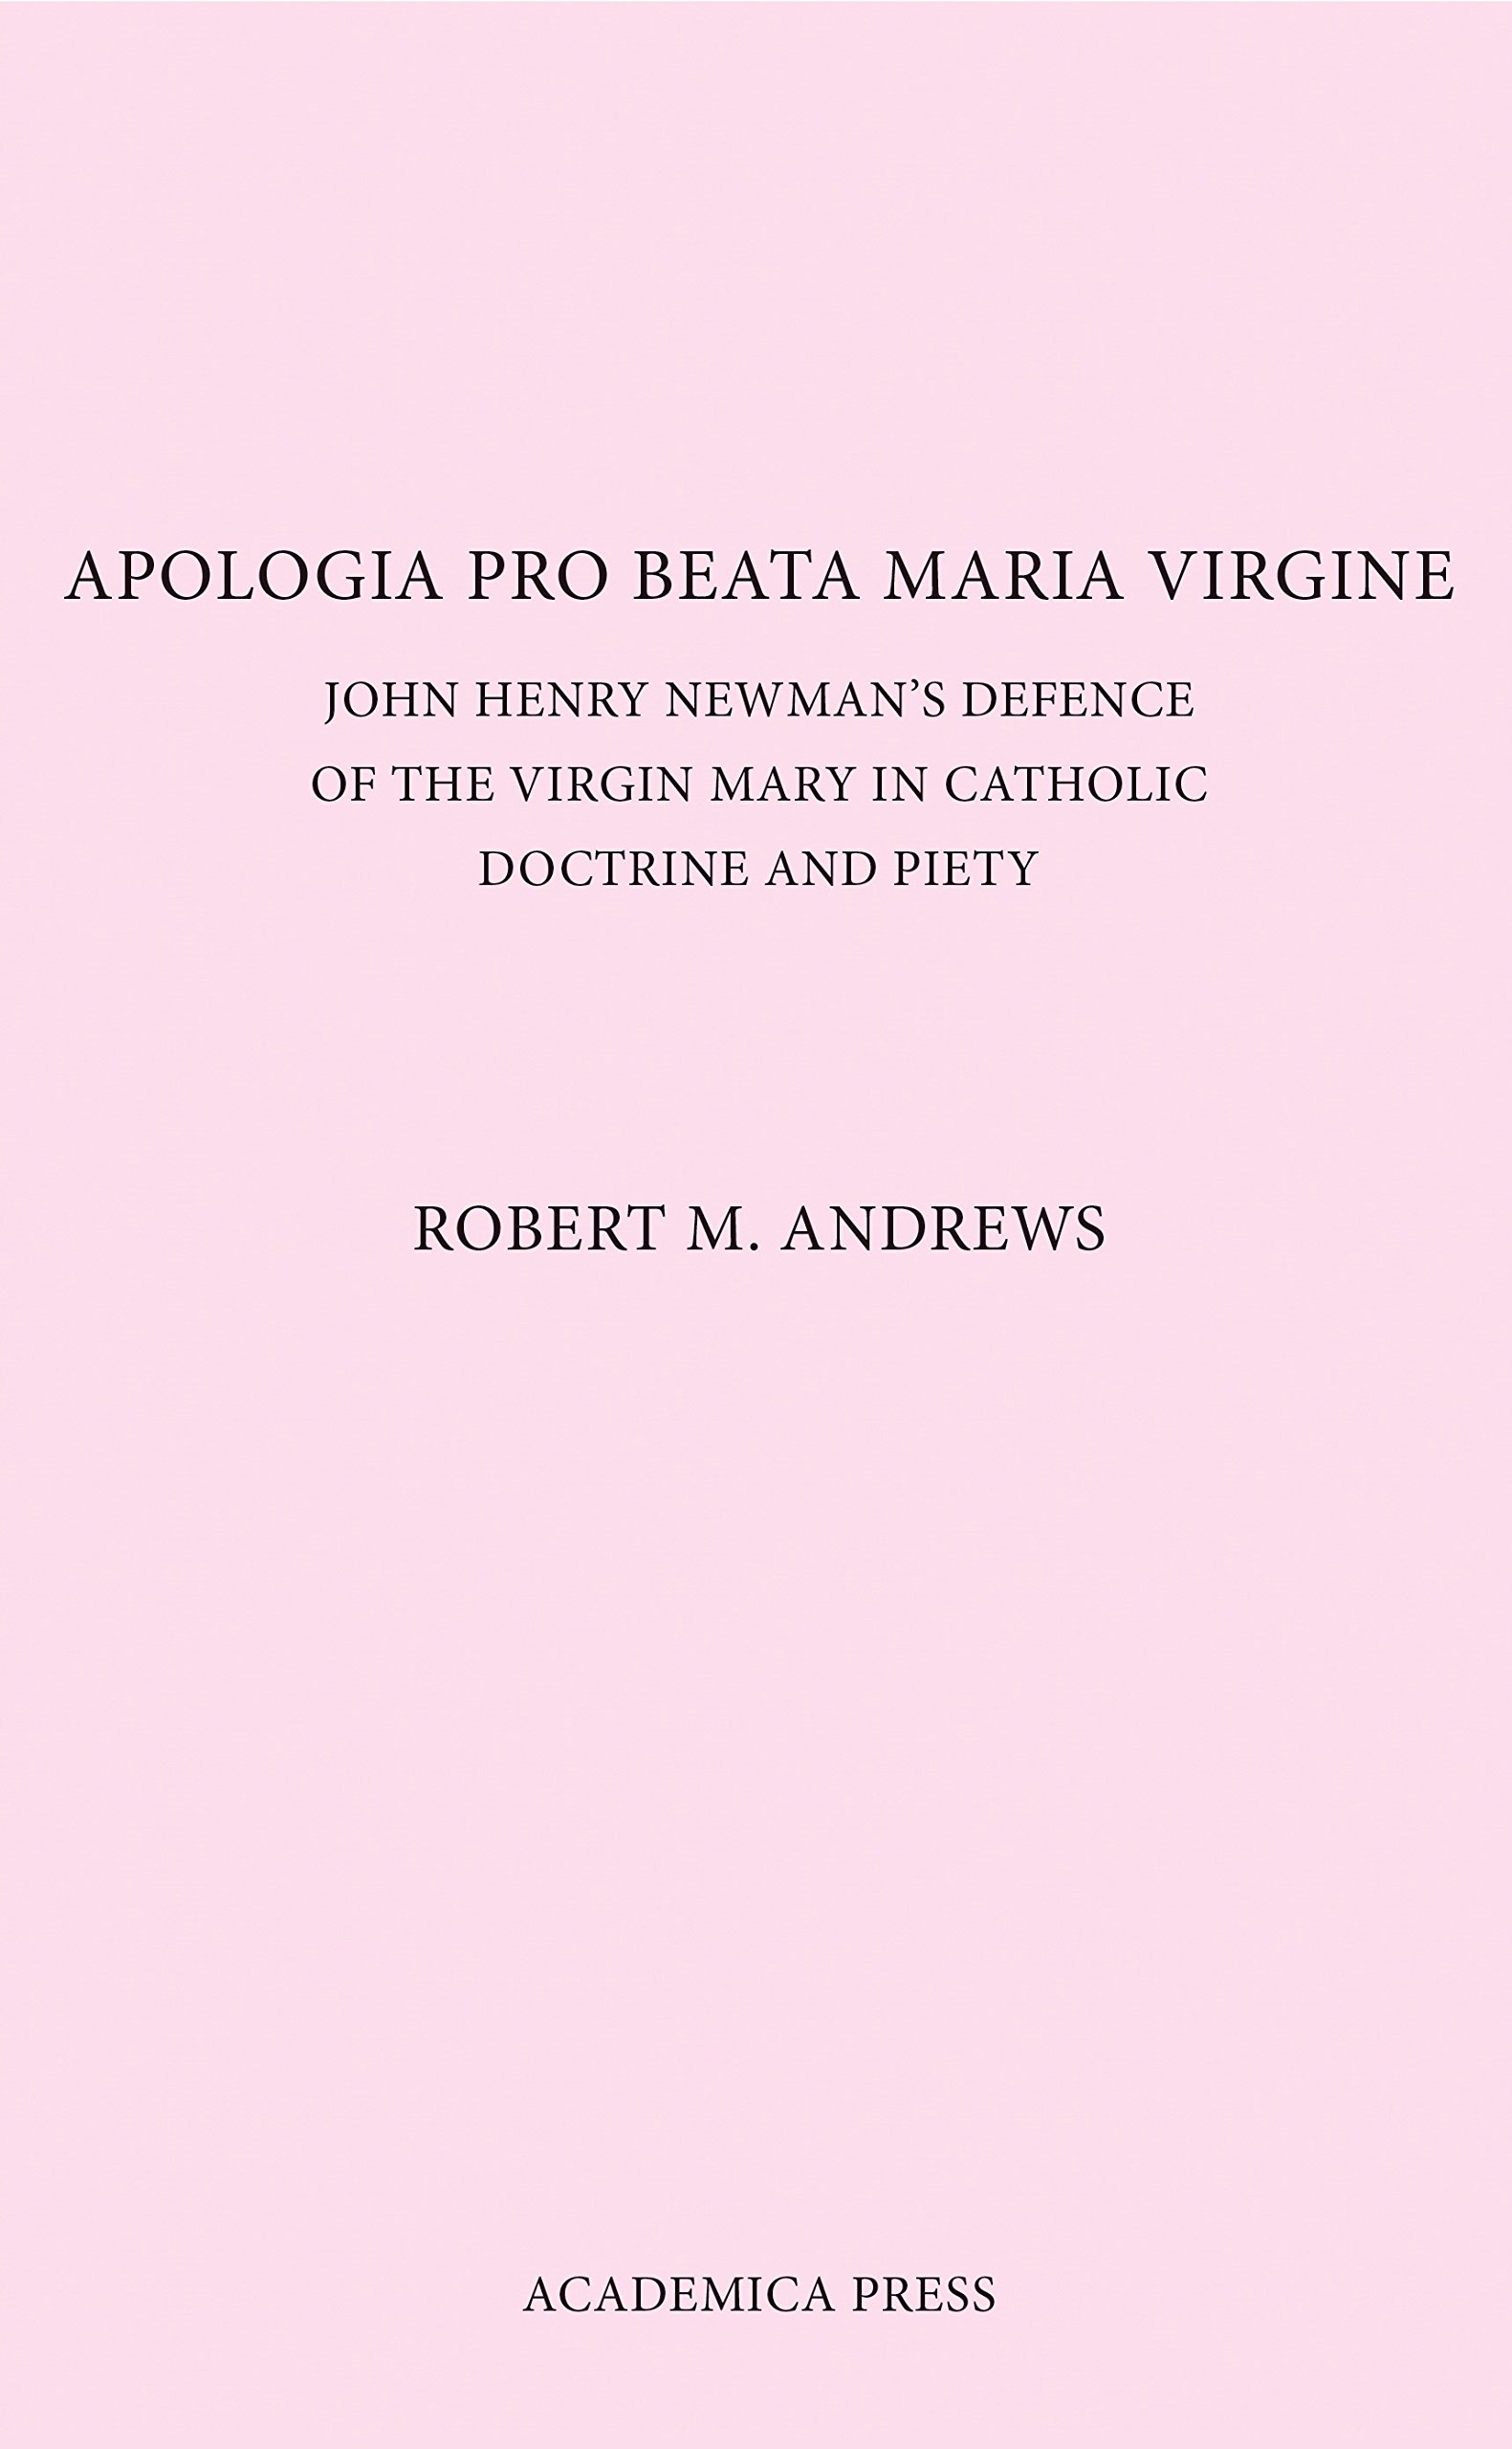 Apologia Pro Beata Maria Virgine: John Henry Newman's Defence of the Virgin Mary in Catholic Doctrine and Piety (revised paperback edition) PDF